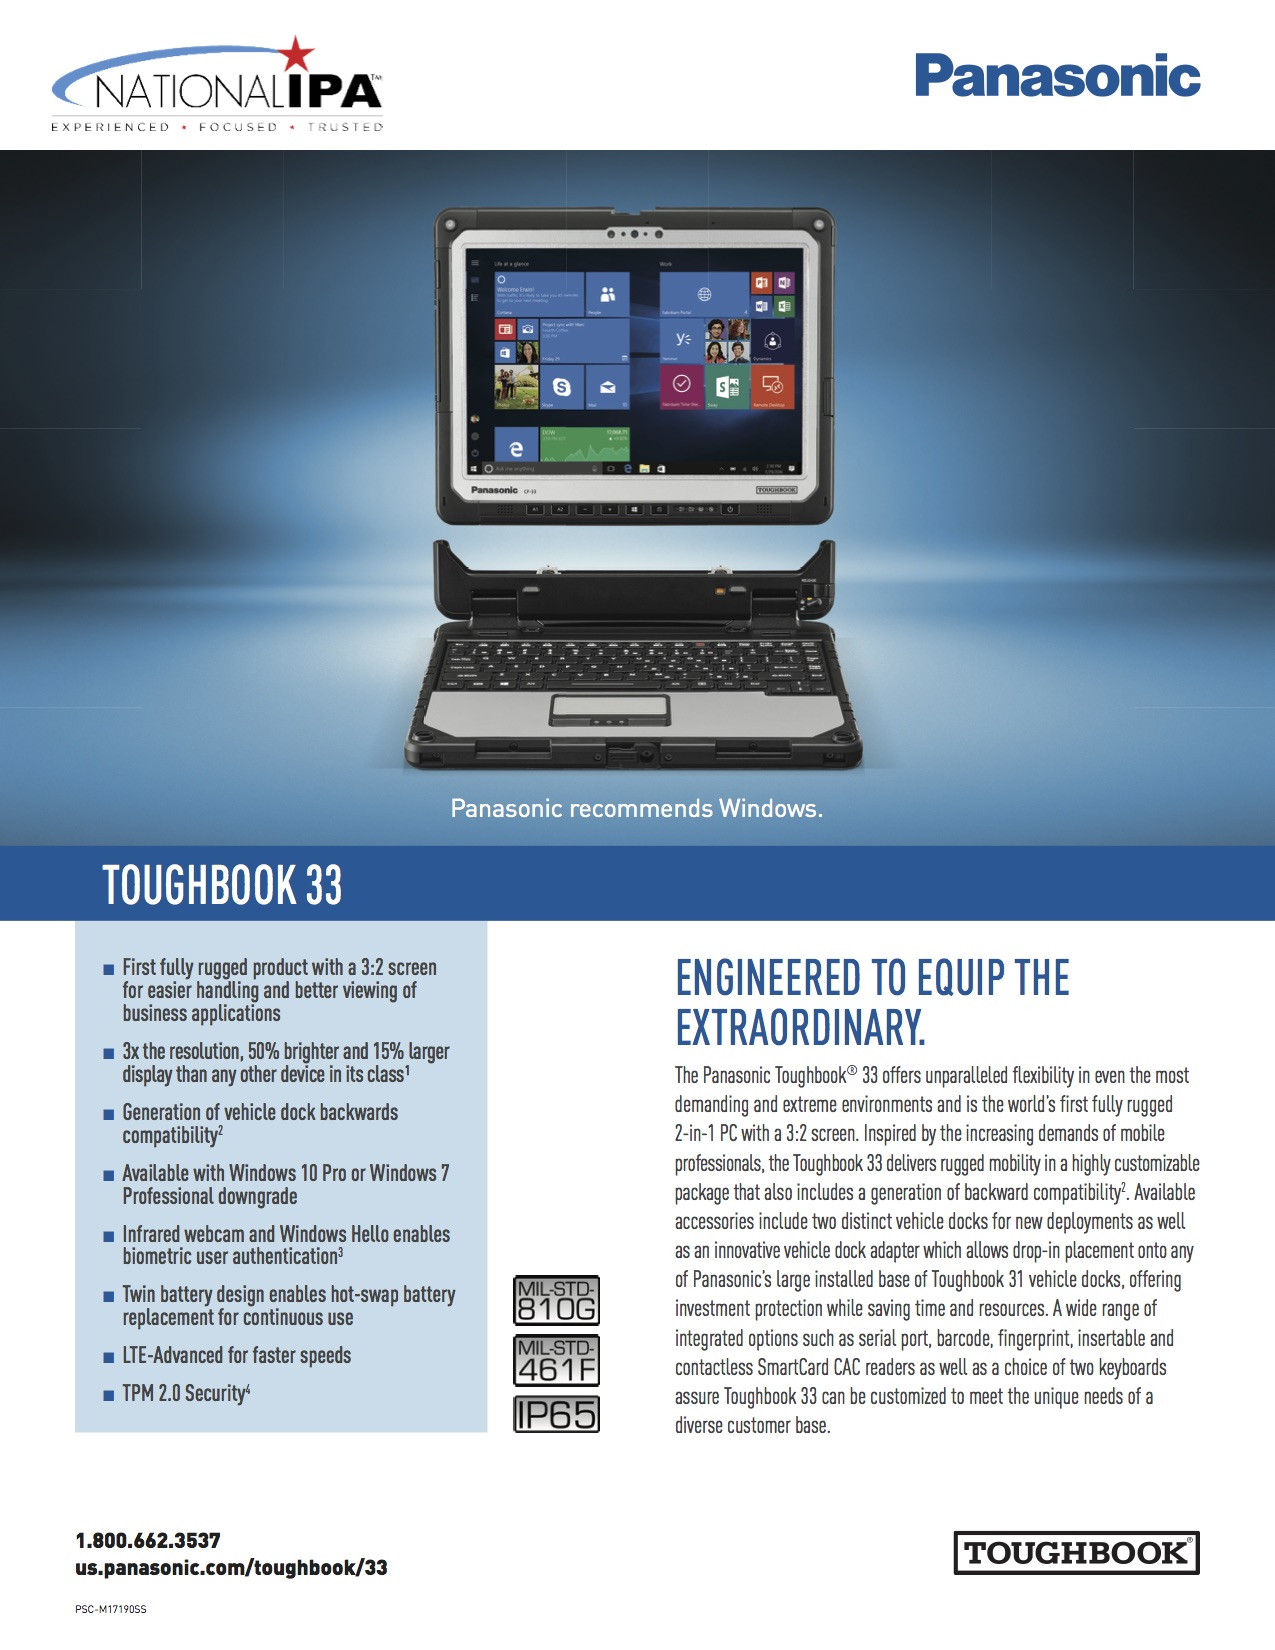 Toughbook 33 Spec Sheet with National IPA